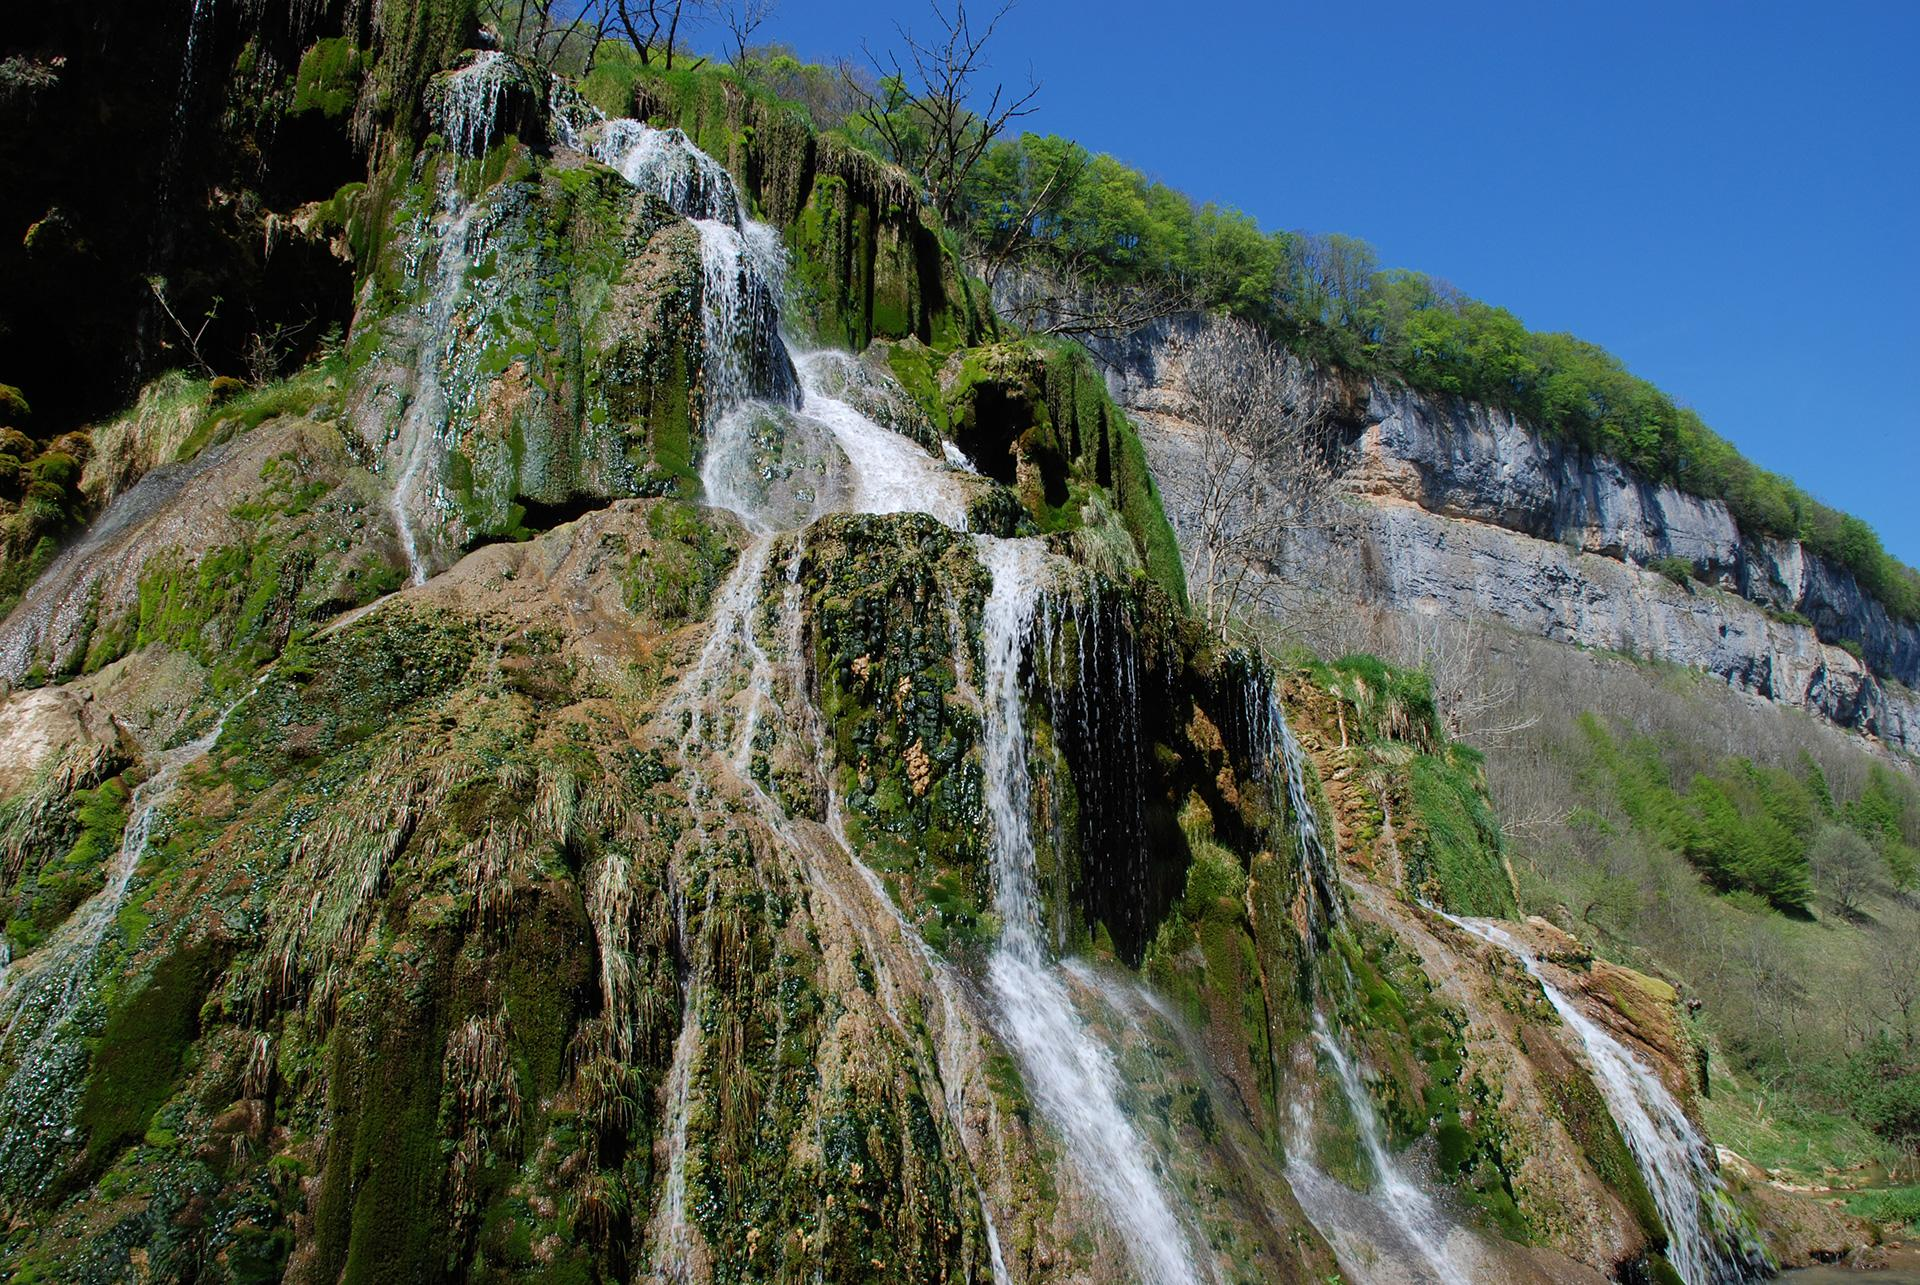 The Dard waterfall in Jura